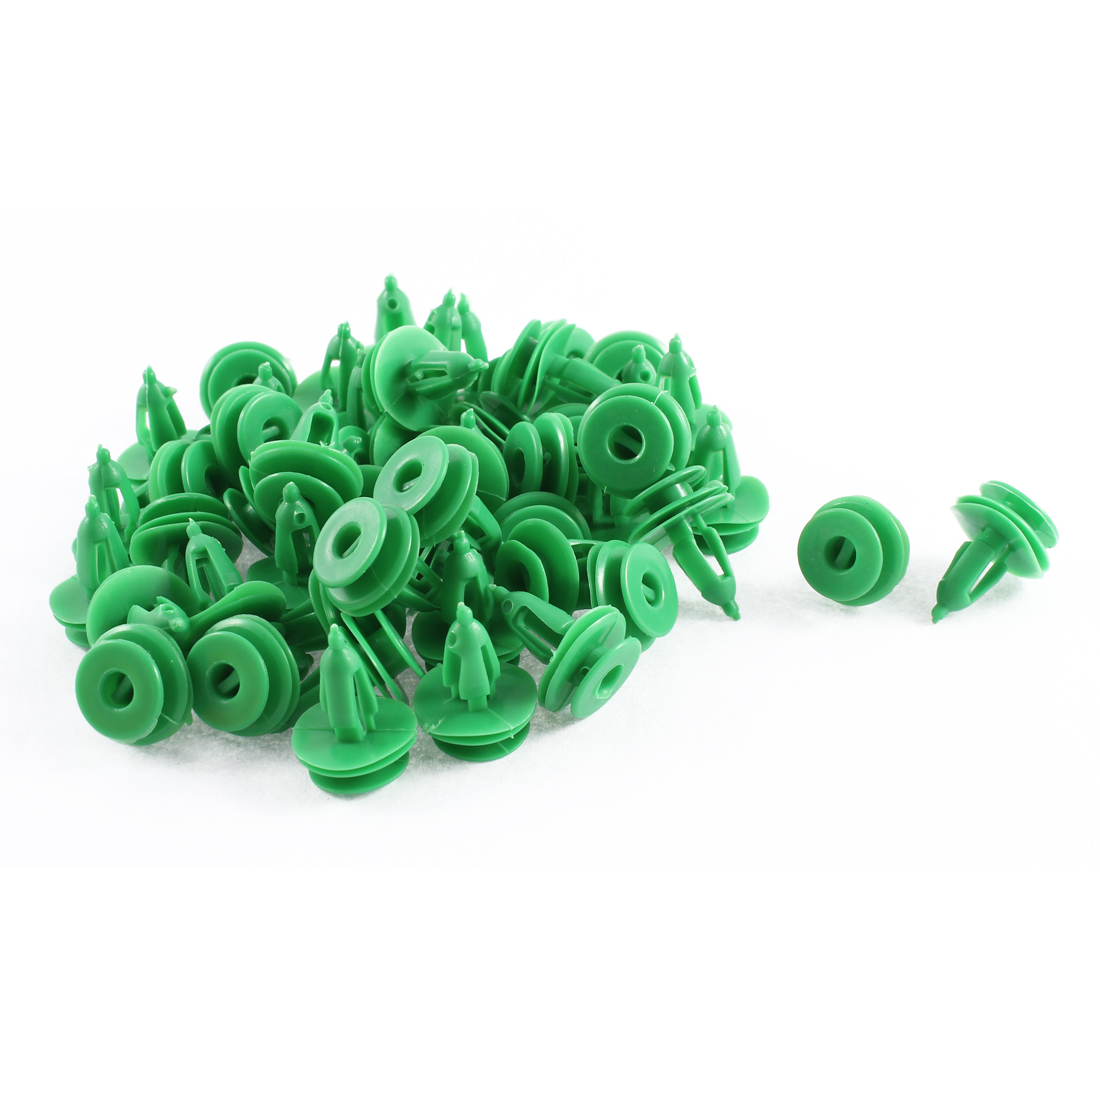 52Pcs Green Push Type Moulding Splash Guard Plastic Retainer 7 x 17 x 16mm